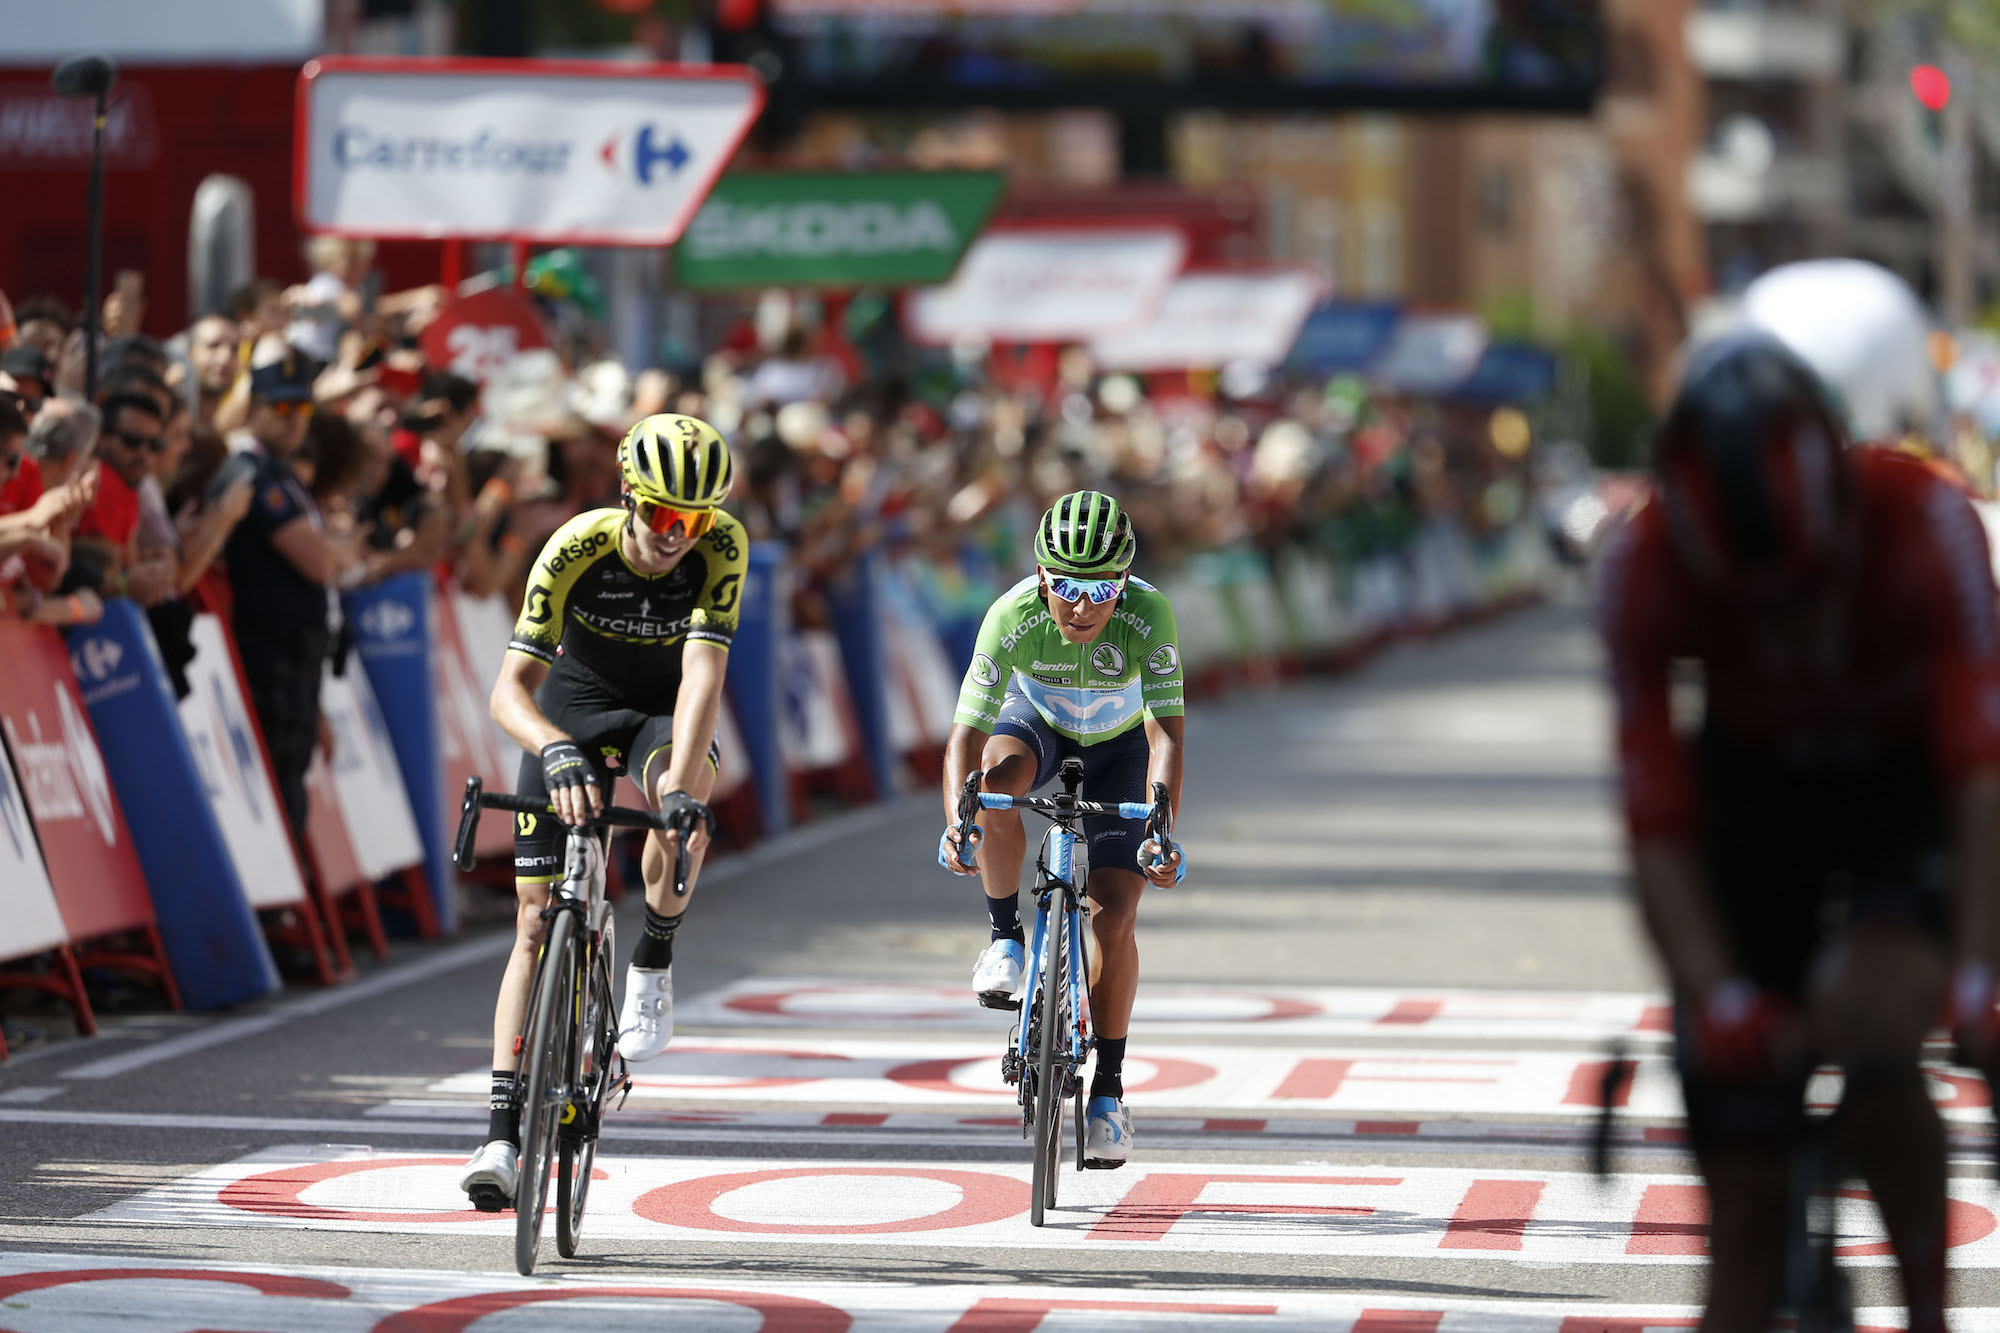 Nairo Quintana: 'I'll give everything until the end at Vuelta a España'